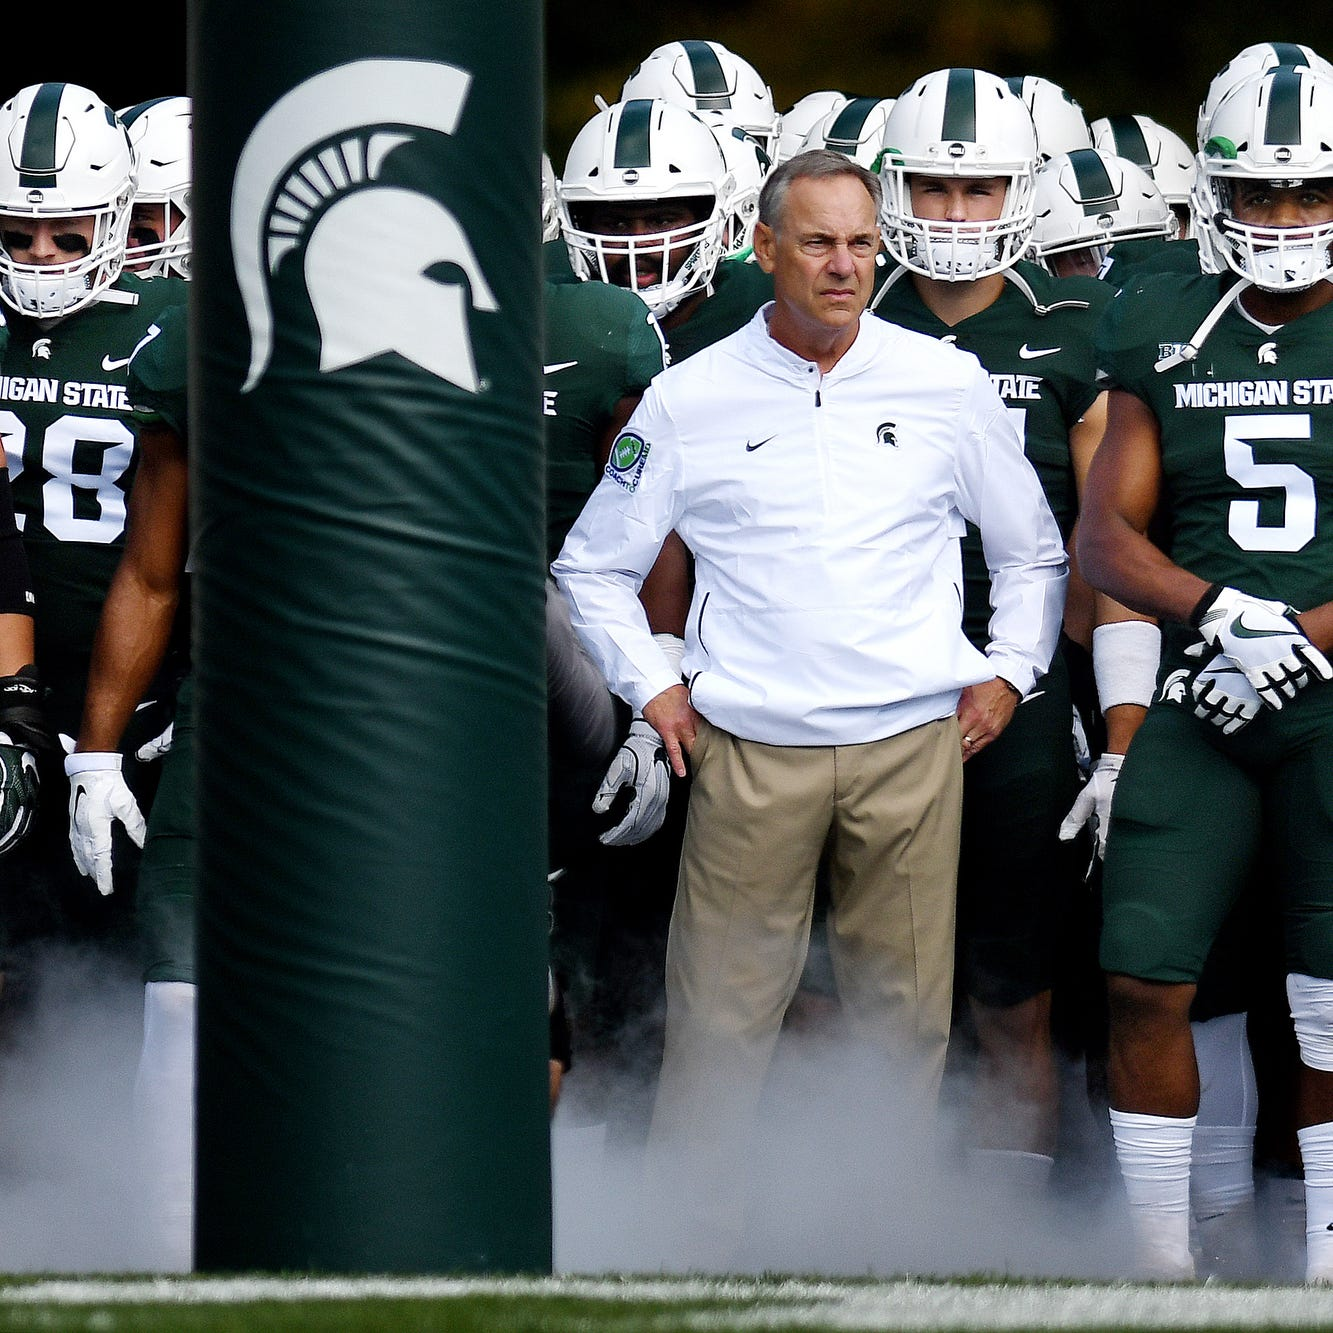 Michigan State-Oregon Redbox Bowl: $33 tickets available, but will Spartan fans show up?